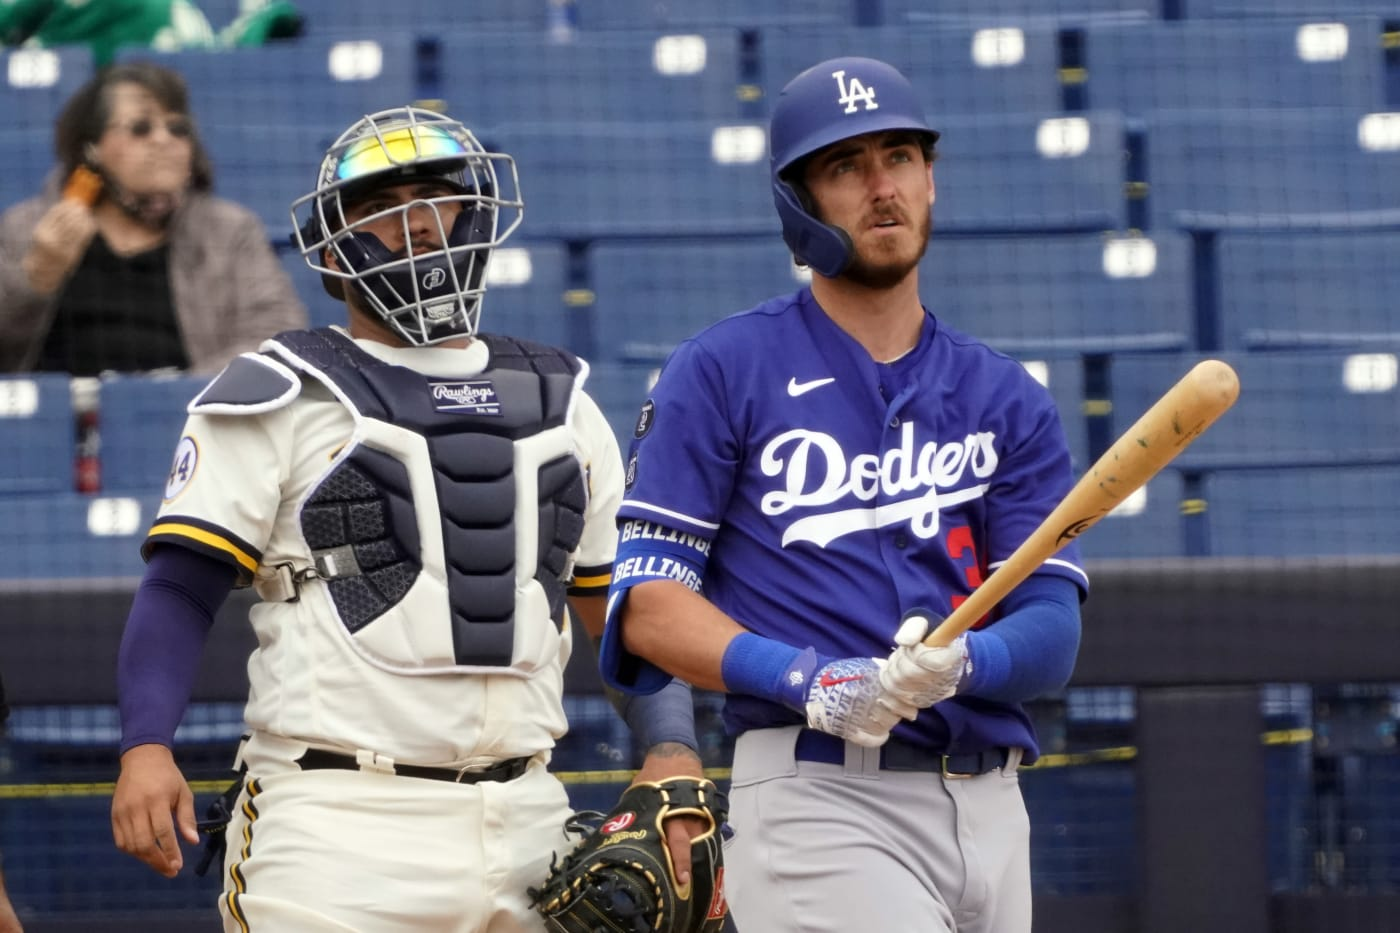 Cody Bellinger Dodgers Brewers Spring Training 1 2021